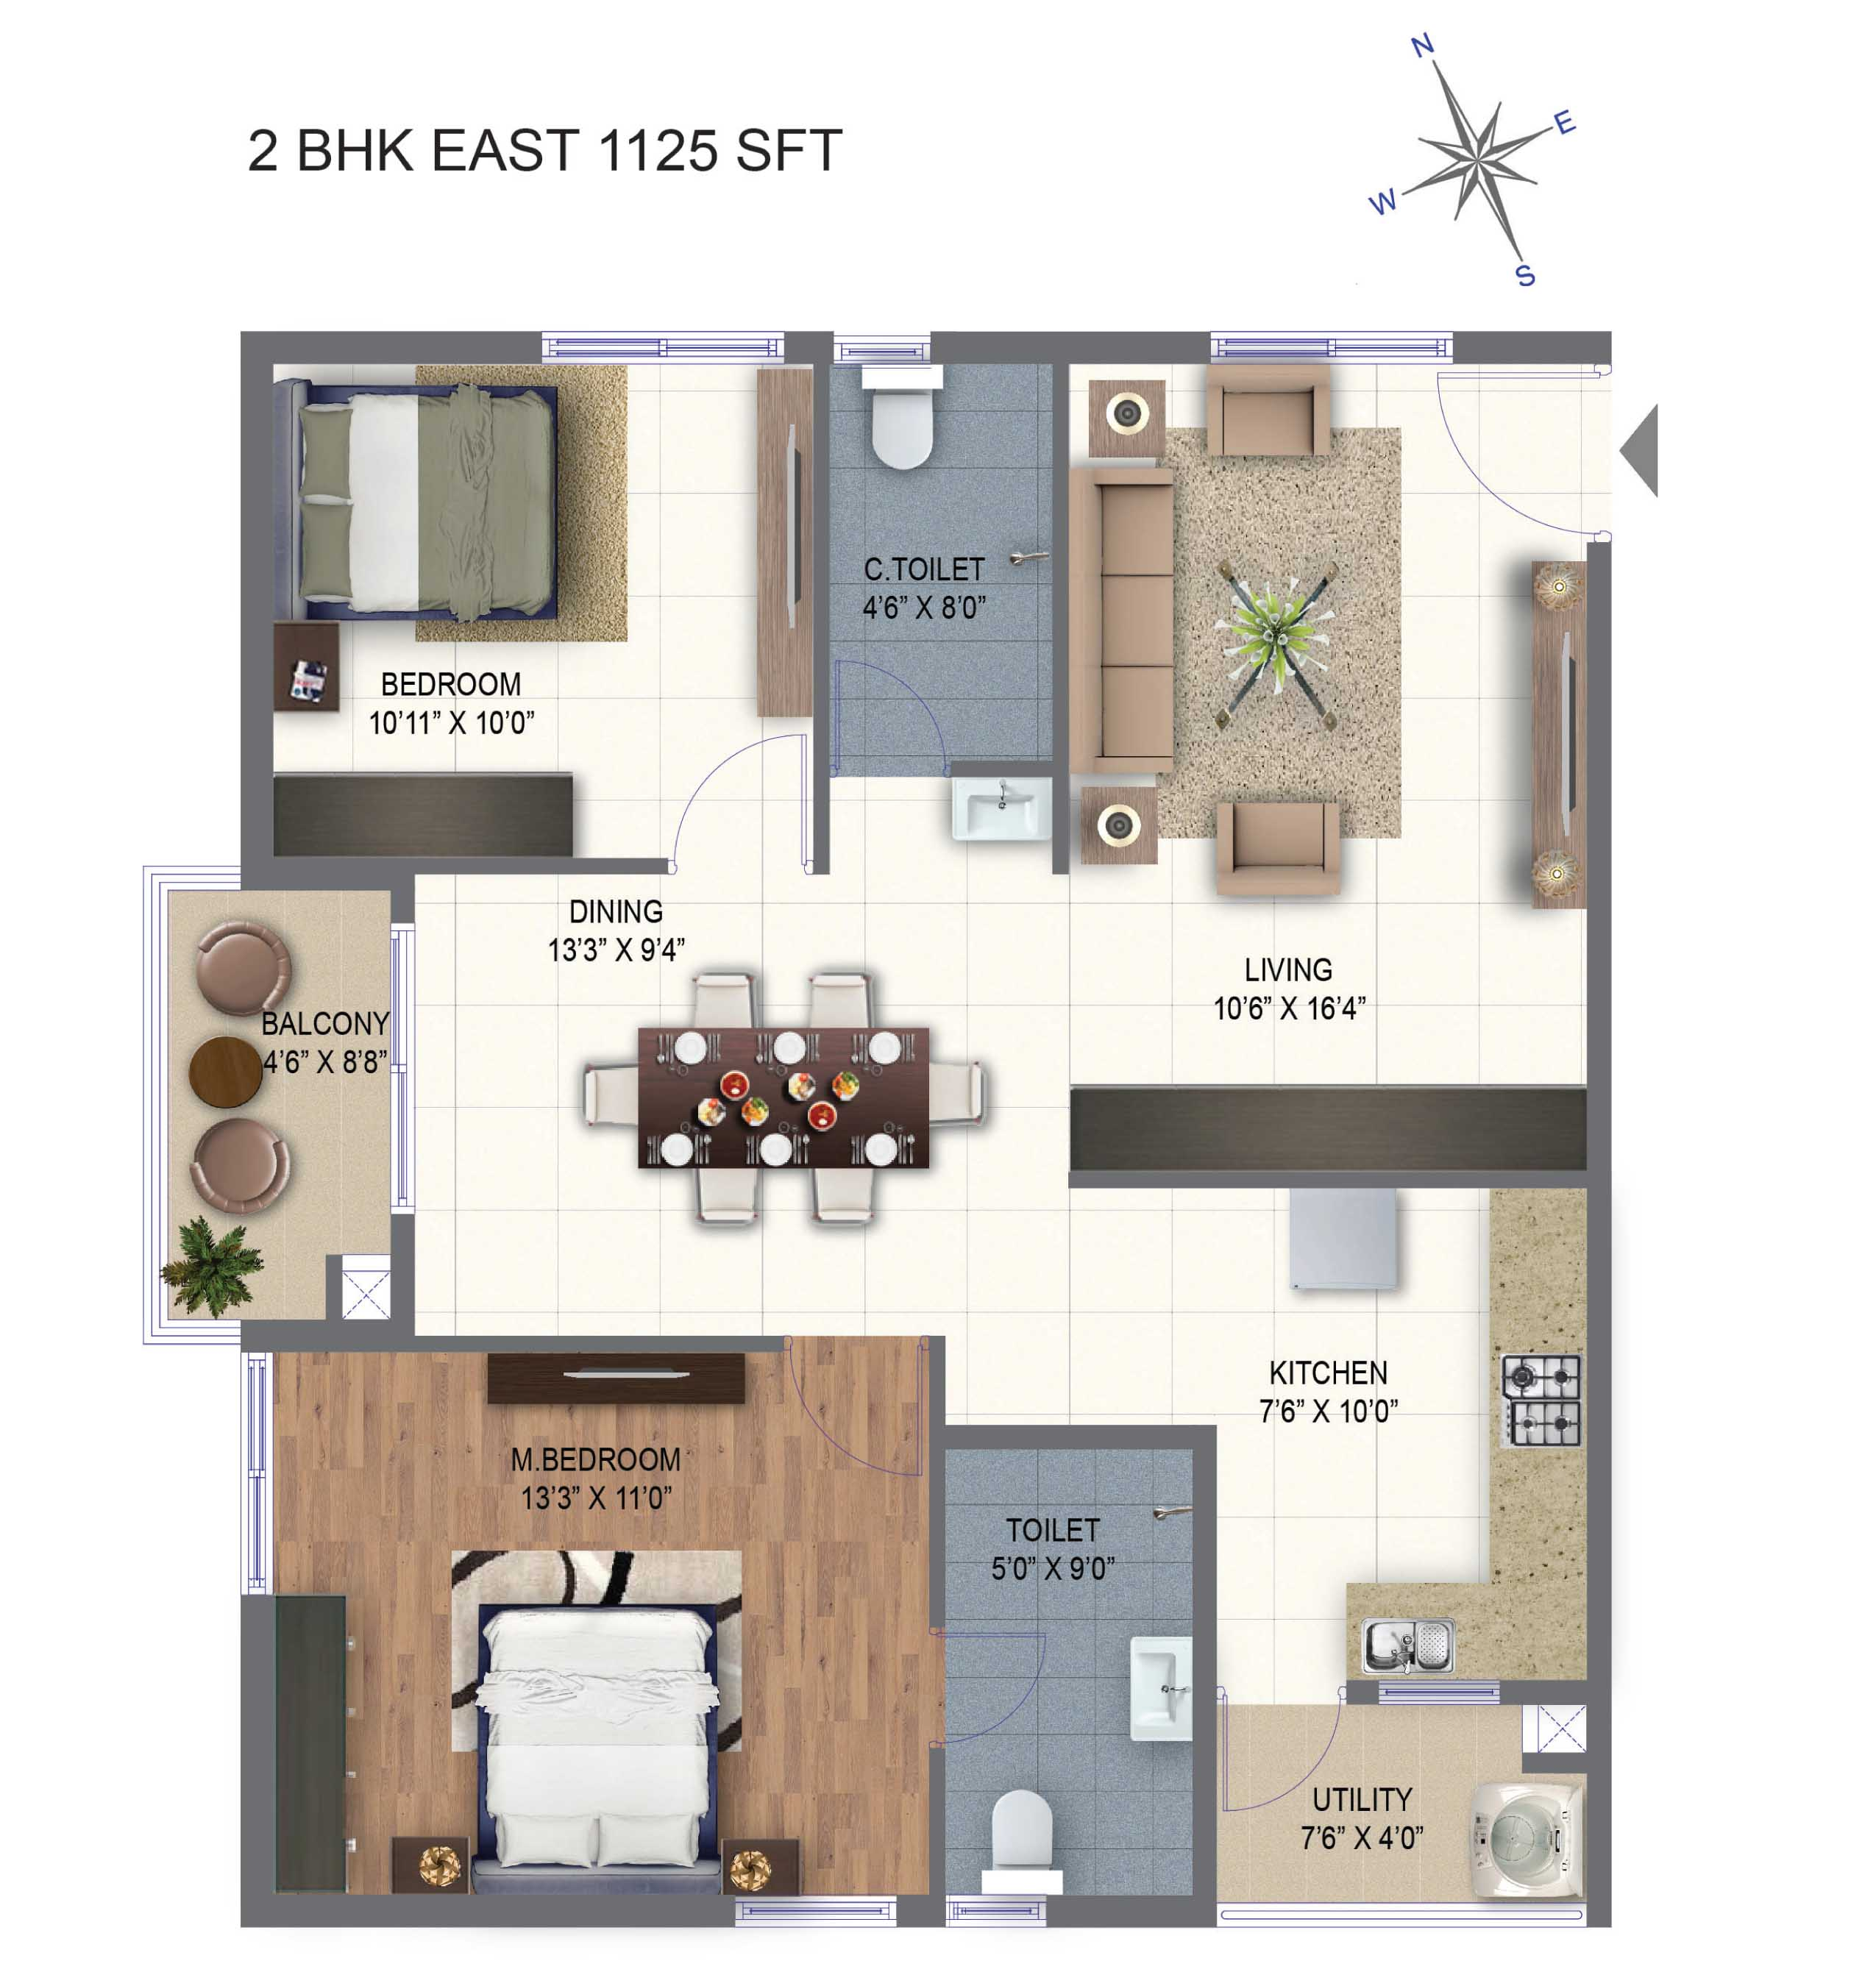 2/3 BHK Flats for sale in Kukatpally